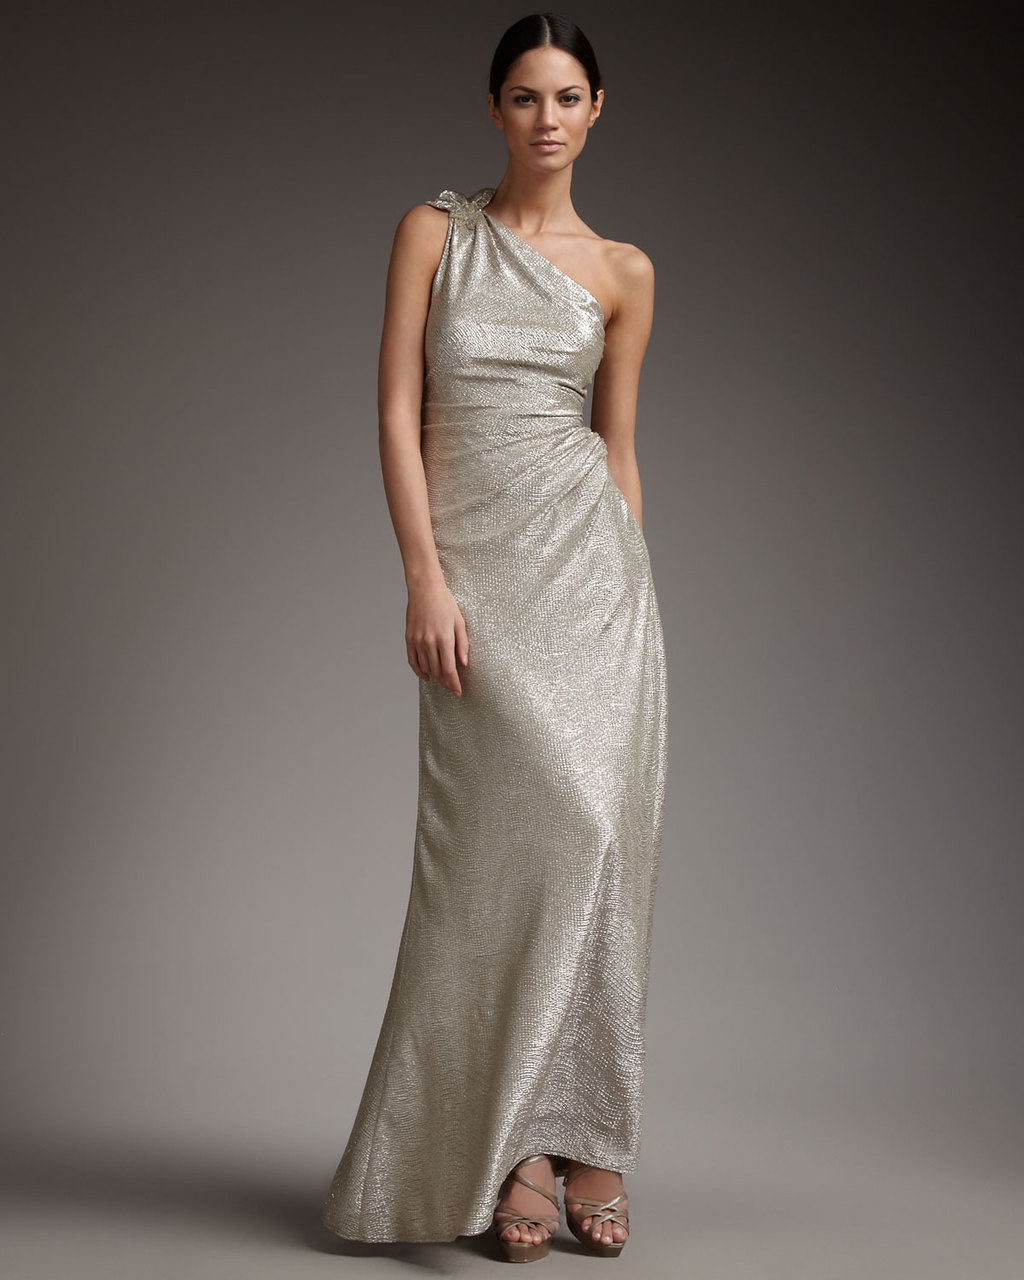 653955cefa2 Metallic wedding guest dresses one shoulder long champagne silver